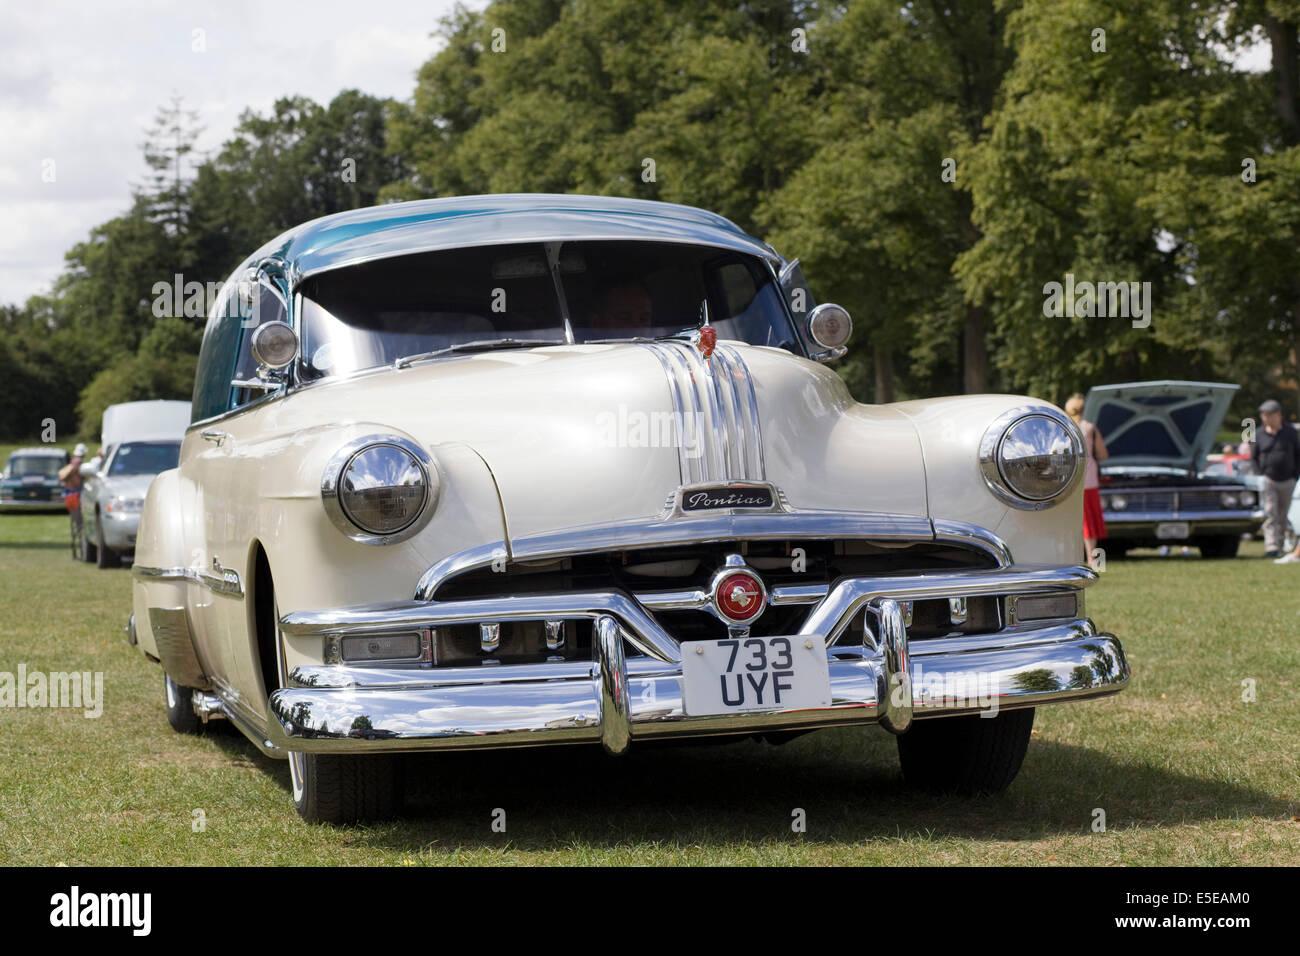 Pontiac Silver Streak Stock Photos 1941 Coupe Convertible With A Hard Top Covering Image